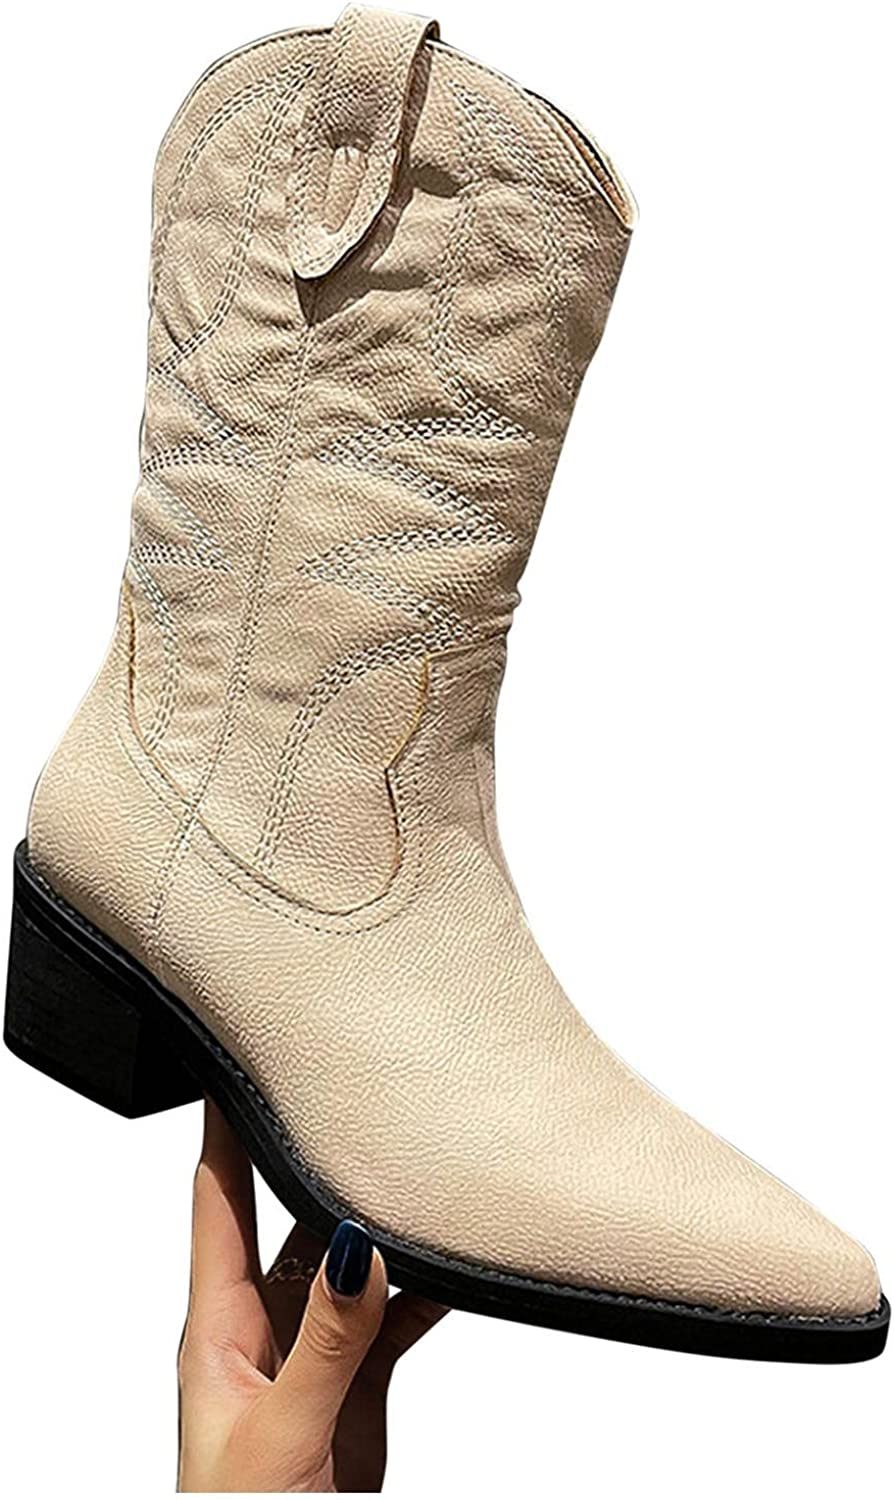 Hbeylia Cowboys Boots For Women Vintage Embroidery Leather Wide Mid Calf Western Cowgirls Boots Comfort Pointed Toe Chunky Block Low Heels Ankle Booties Slip On Knight Riding Boots For Ladies